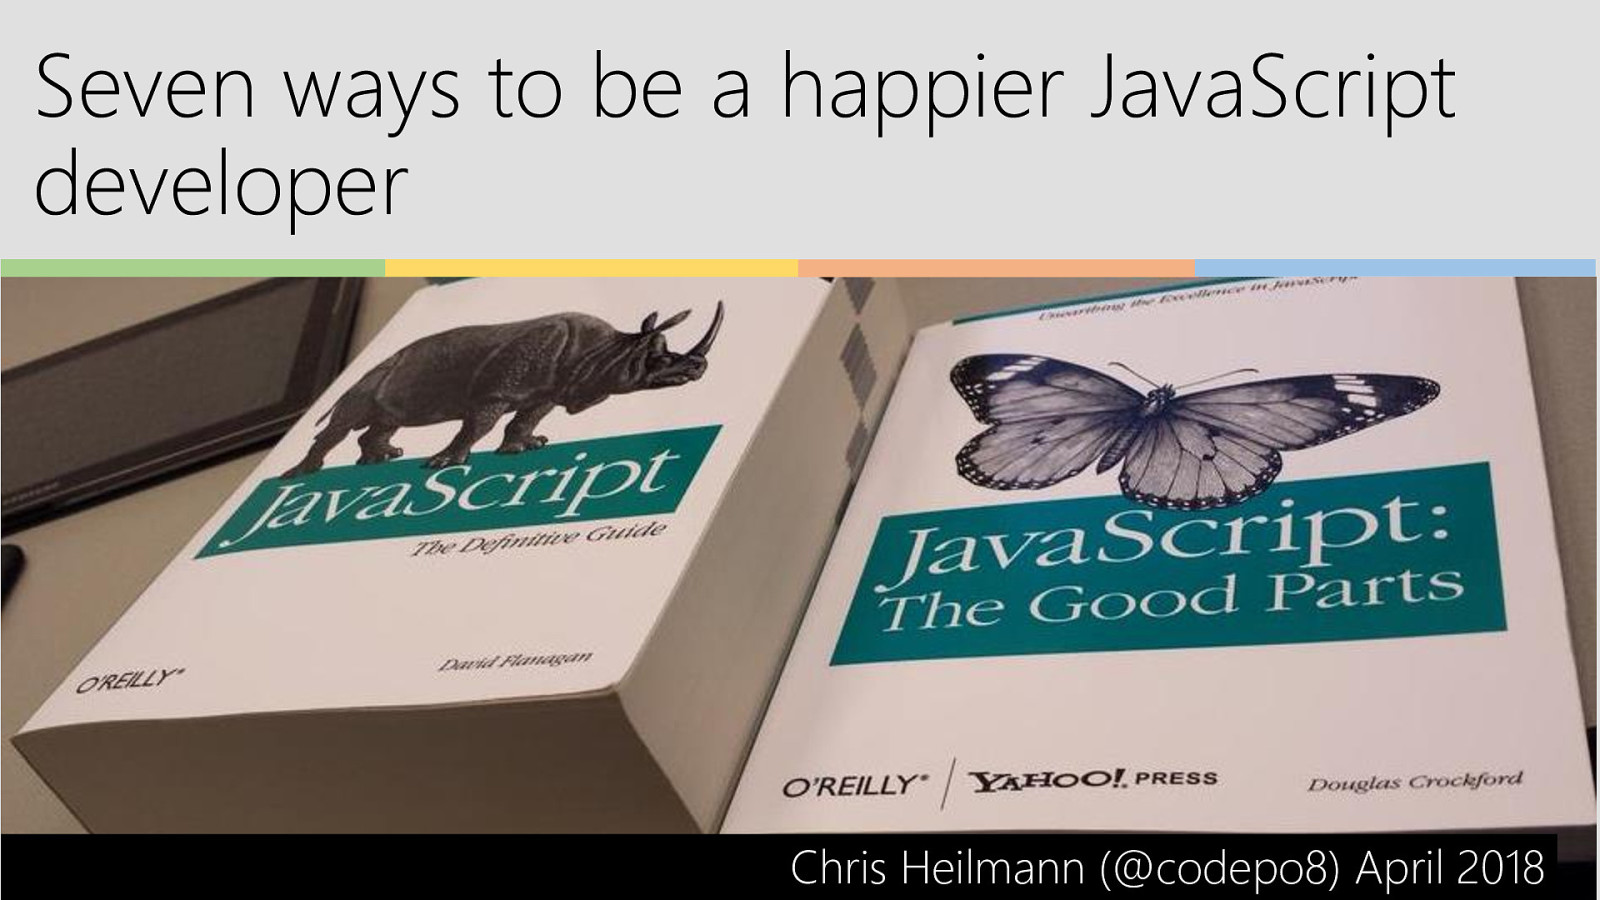 Seven ways to be a happier JavaScript developer